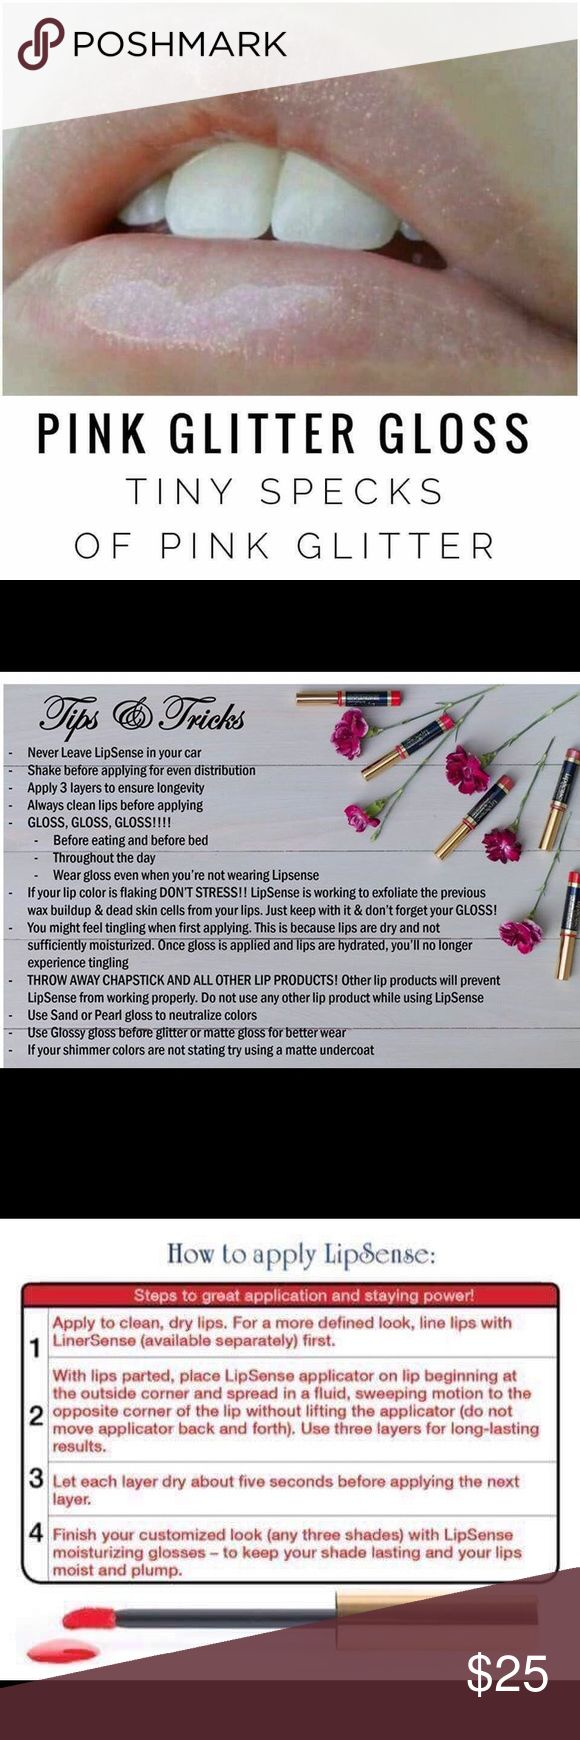 Pink Glitter Gloss LipSense 💋IN STOCK FOR IMMEDIATE SHIPPING! 💋Long lasting lip color. Lasts up to 18 hours with gloss. Gloss is needed!  💋New to LipSense? Starter kit ($55) comes with color of choice, glossy gloss and Opps remover. Any color can be made into a kit. PRICE IS FIRM. ALL OFFERS WILL BE DECLINED OR COUNTERED WITH FULL PRICE. 💋💋💋 NEED A KIT? COMMENT AND I WILL CREATE A LISTING FOR YOU! 💋💋 Makeup